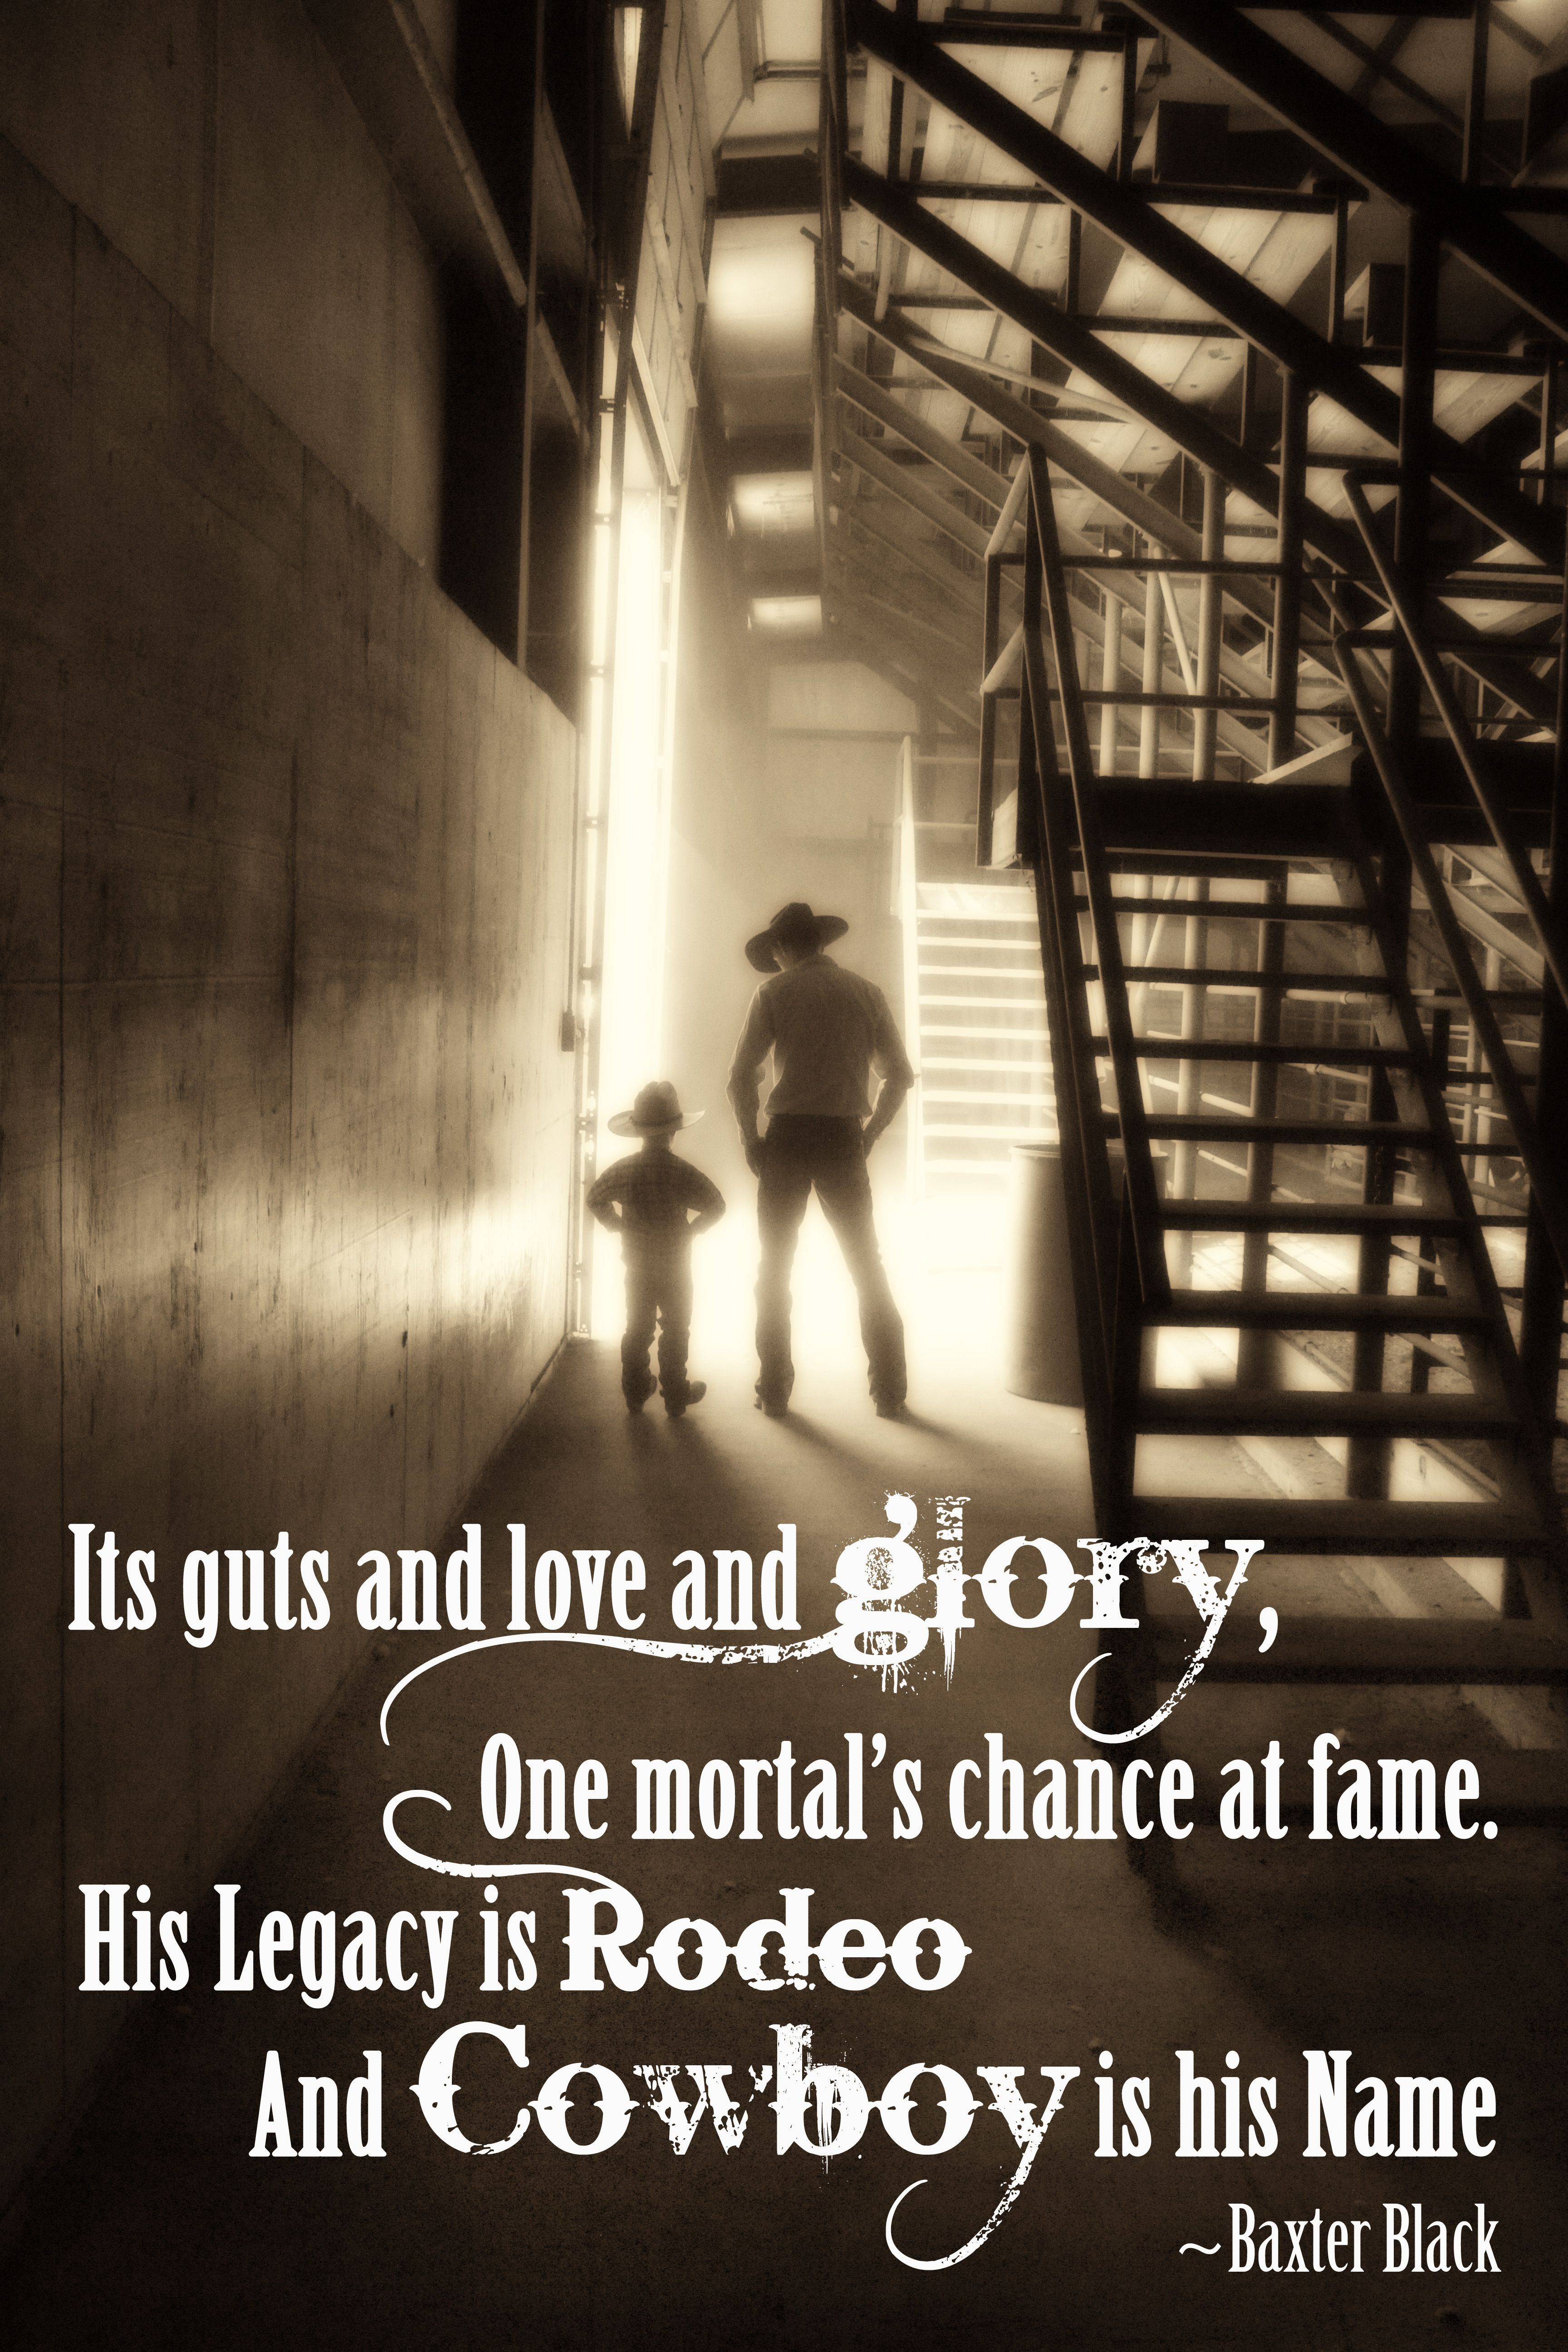 Rodeo Quotes Rodeo Cowboy Western Youth Rodeo | Western Ways | Pinterest  Rodeo Quotes